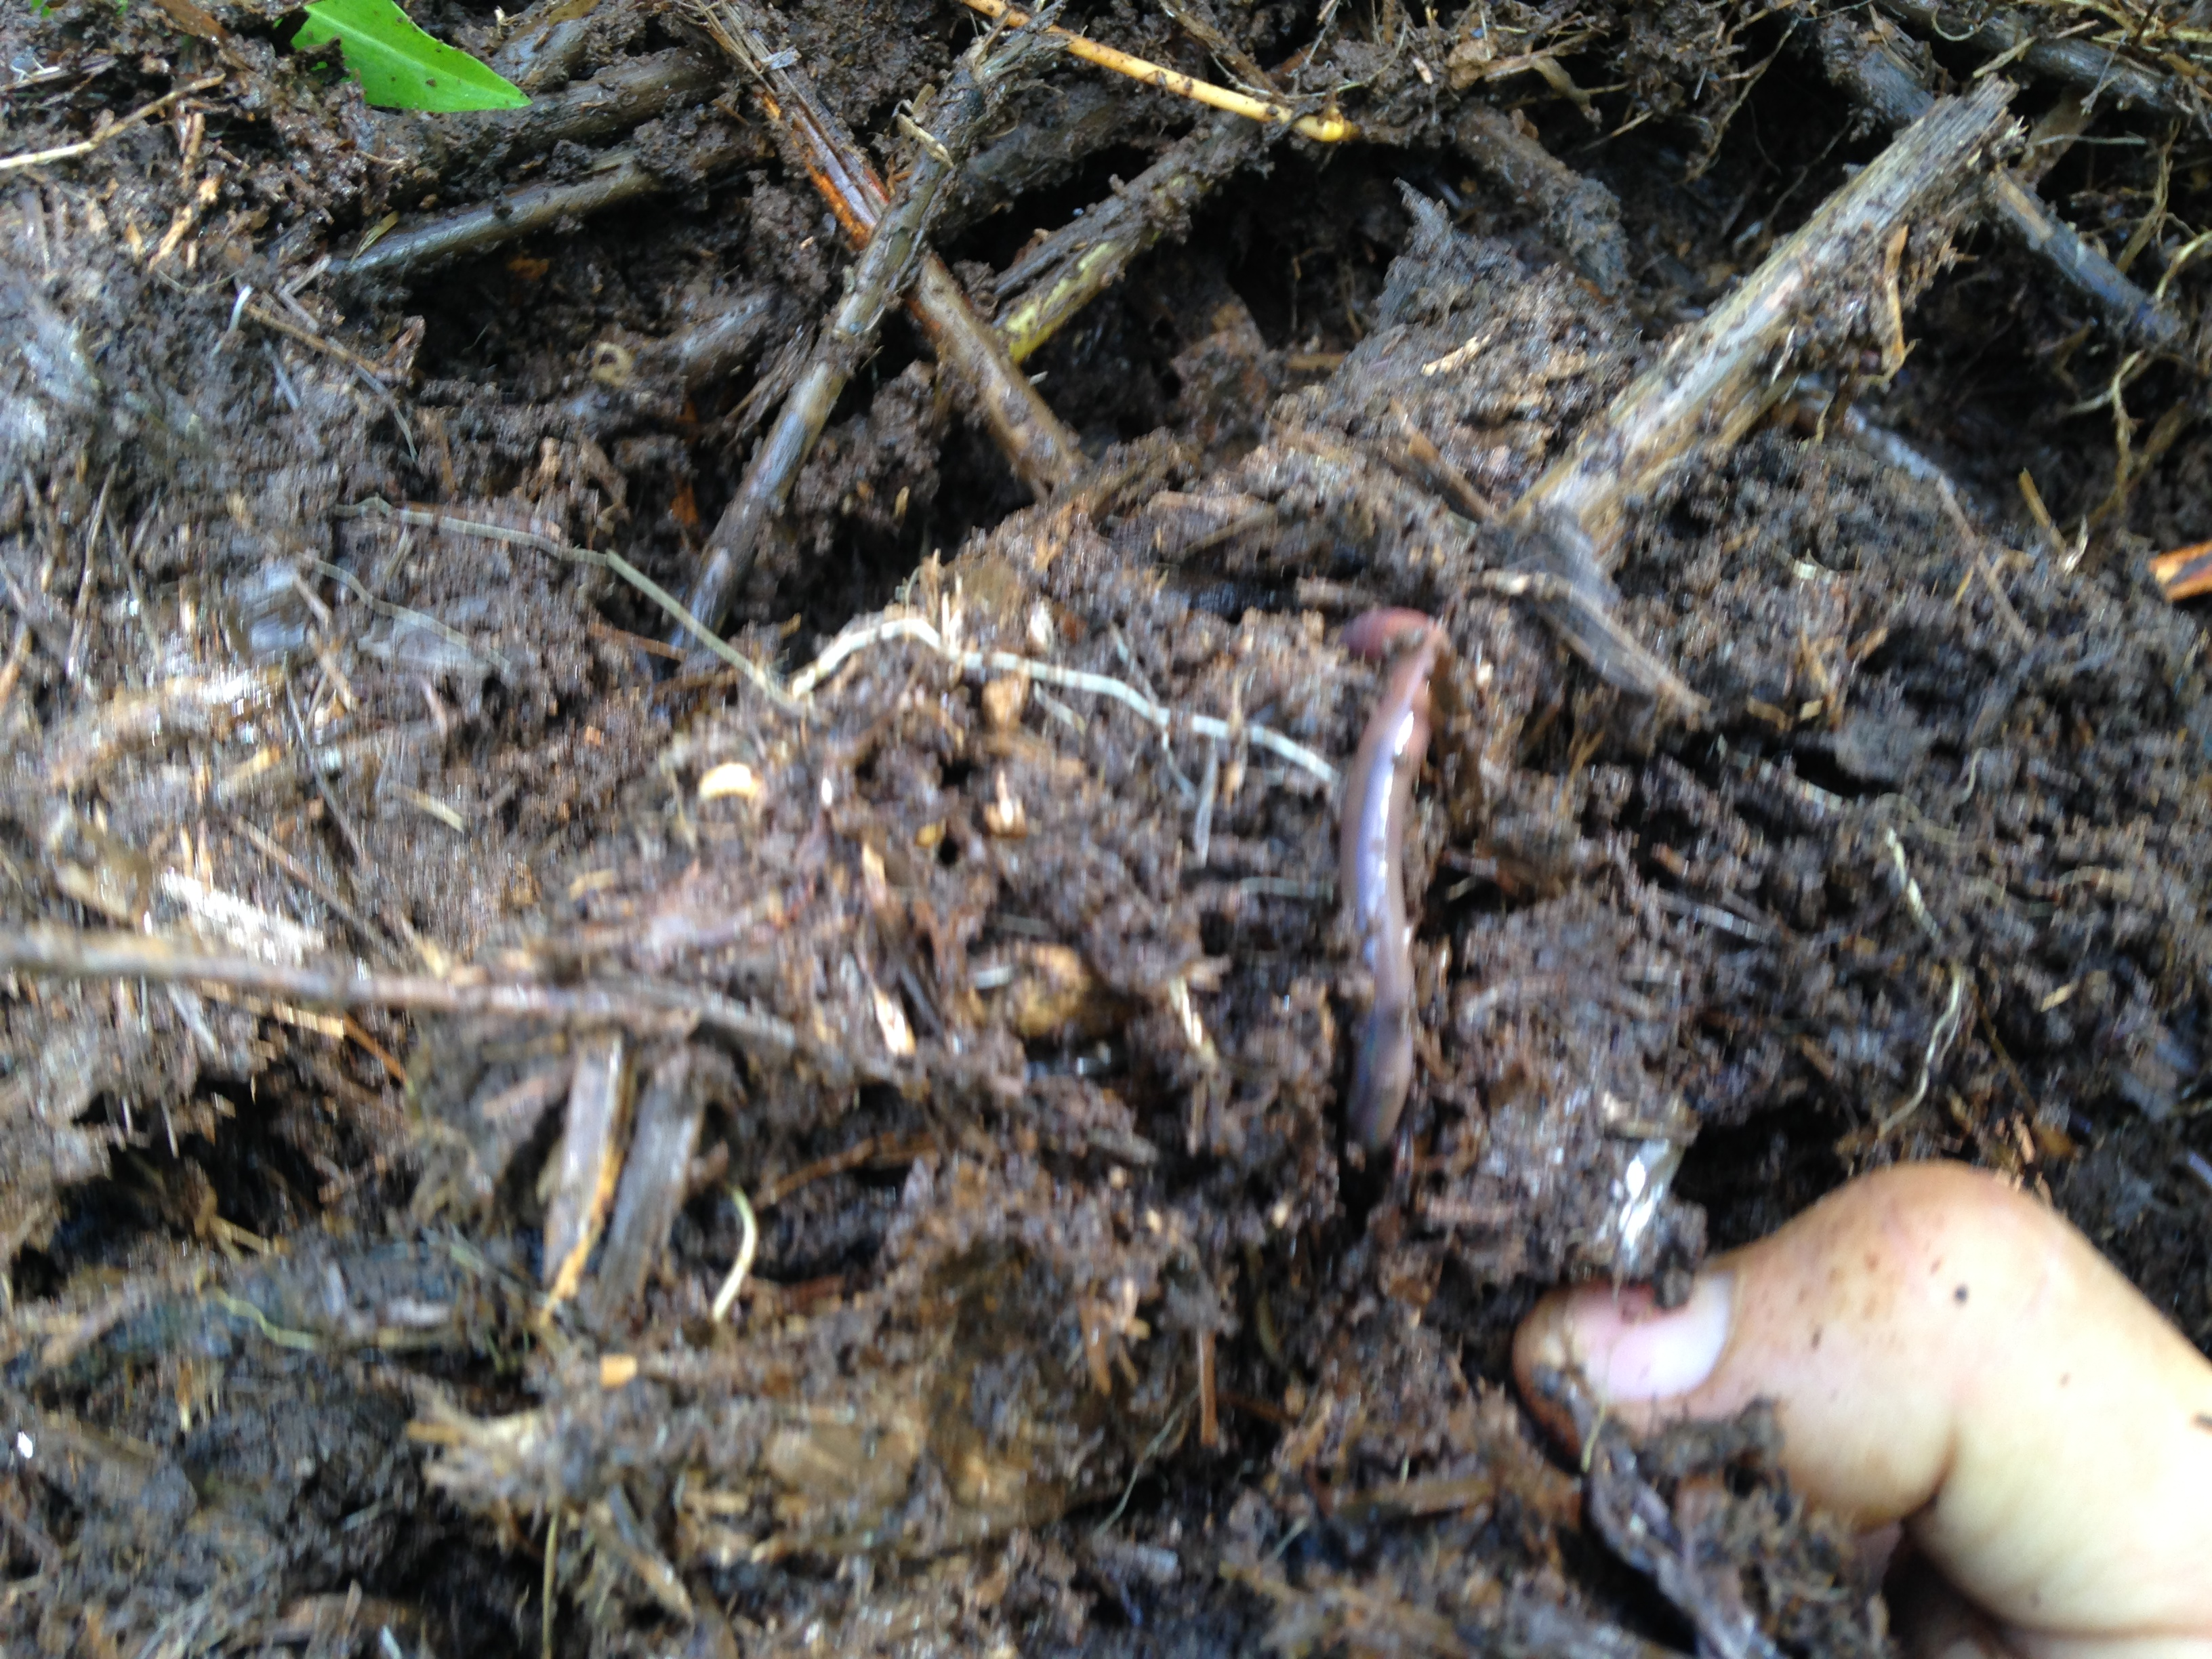 Worms in action, building soil